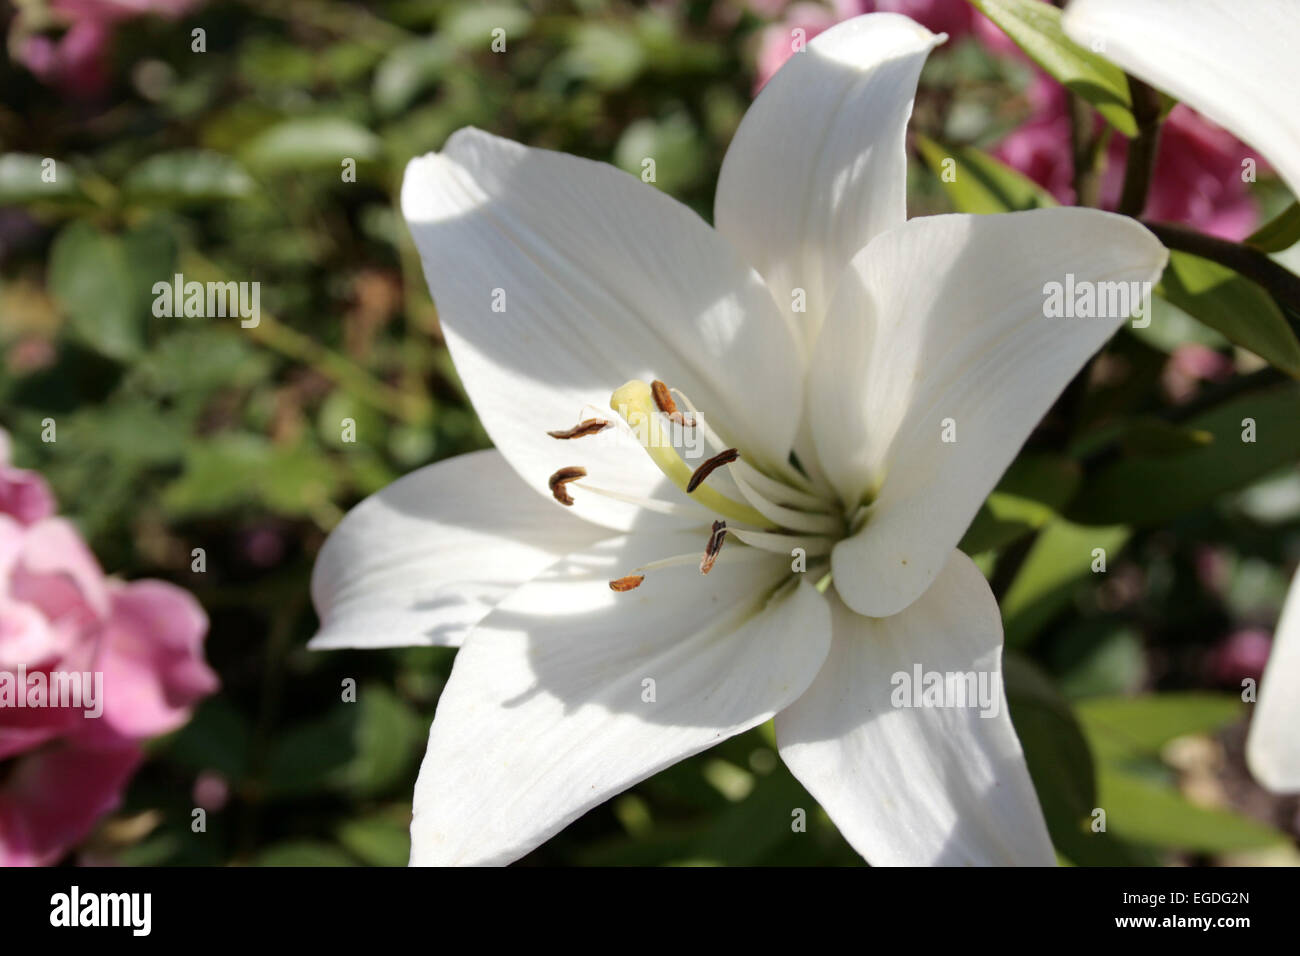 lily blossom in the summertime - Stock Image